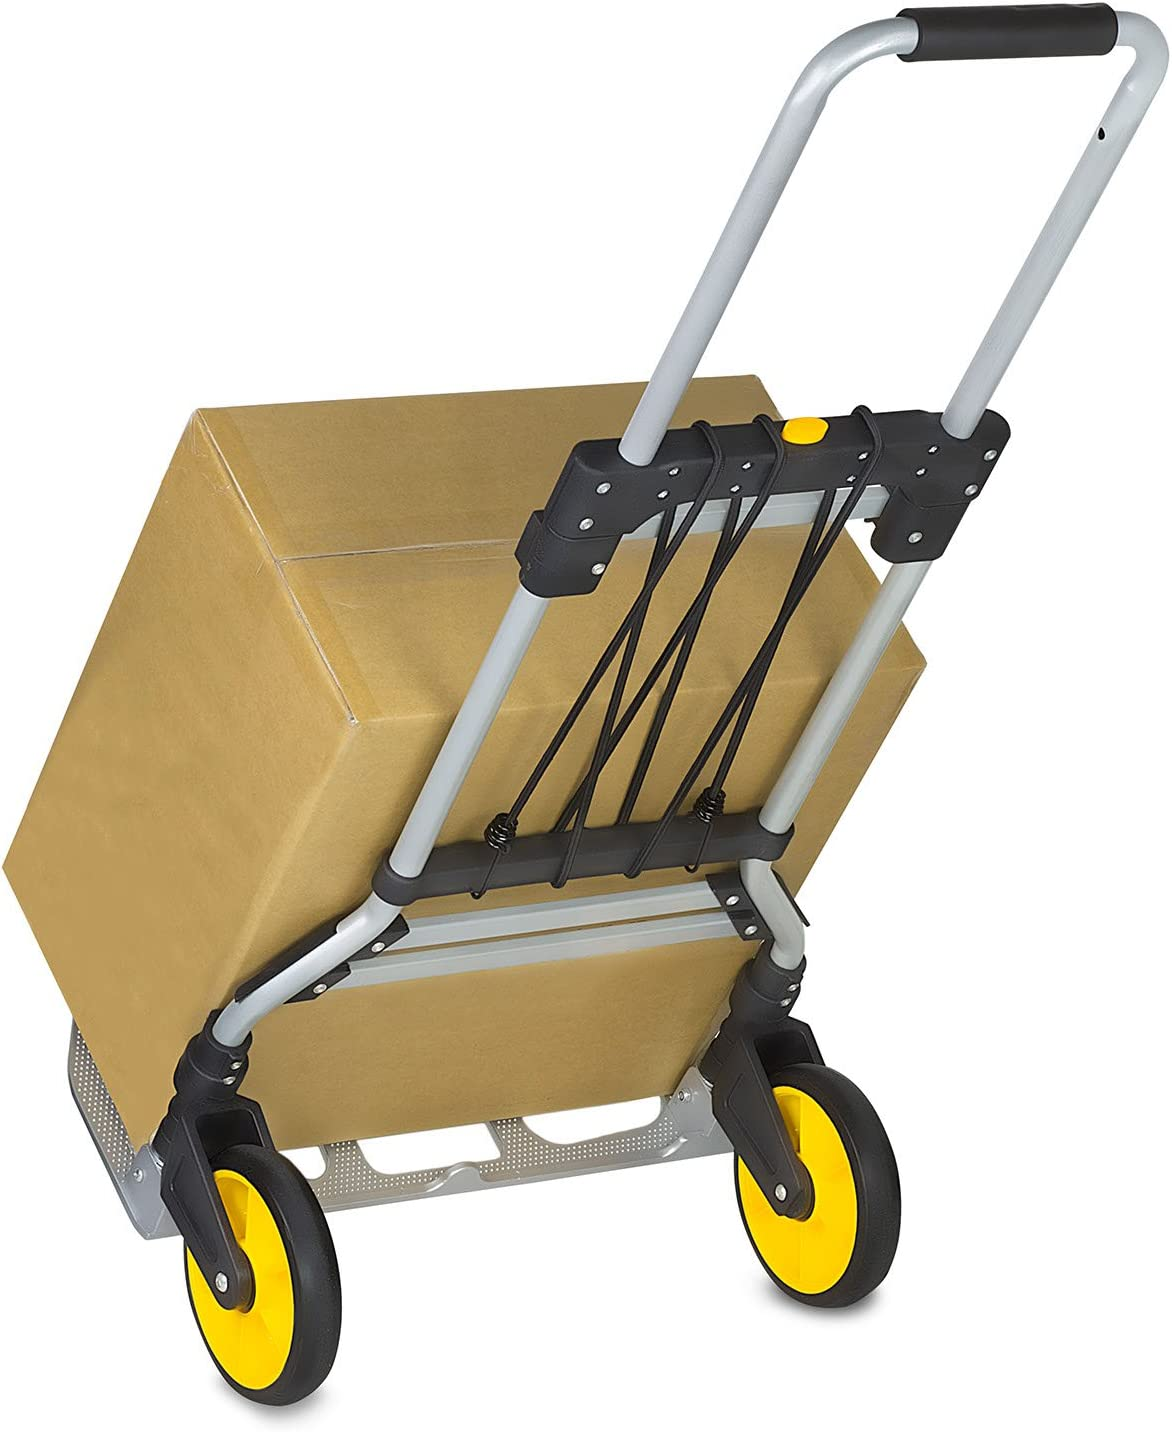 Amazon Com Mount It Folding Hand Truck And Dolly 264 Lb Capacity Heavy Duty Luggage Trolley Cart With Telescoping Handle And Rubber Wheels Silver Black Yellow Office Products